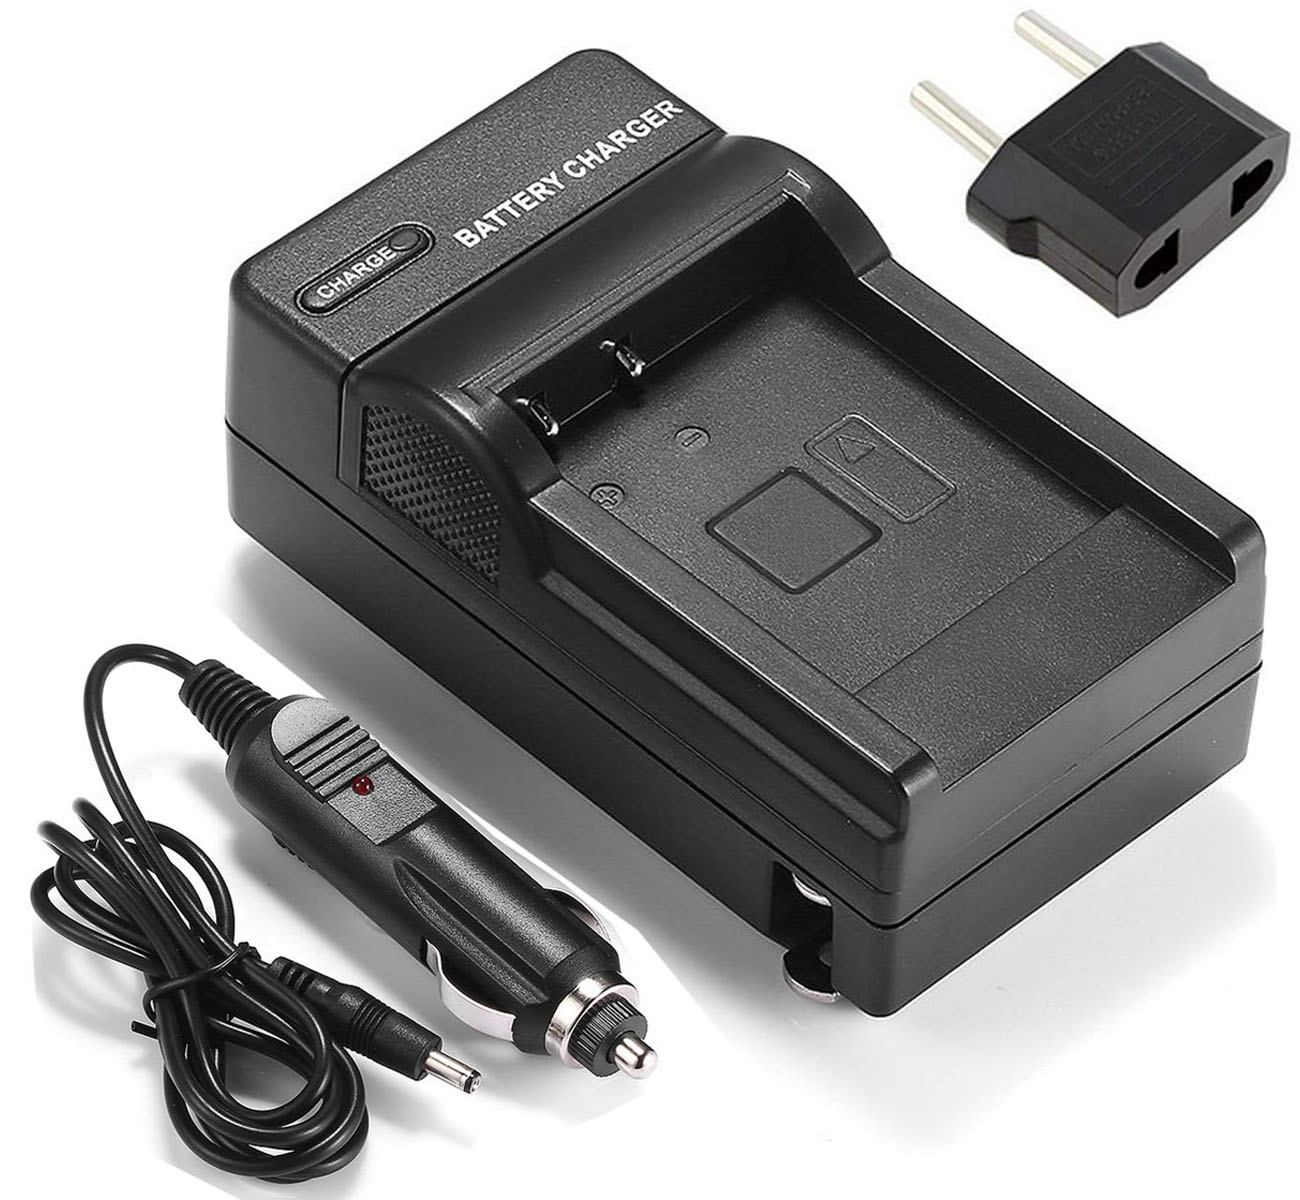 Battery Charger for <font><b>Canon</b></font> PowerShot SX500IS, SX510HS, SX520HS, SX530HS, <font><b>SX540HS</b></font>, SX600HS, SX610HS, SX700HS Digital Camera image